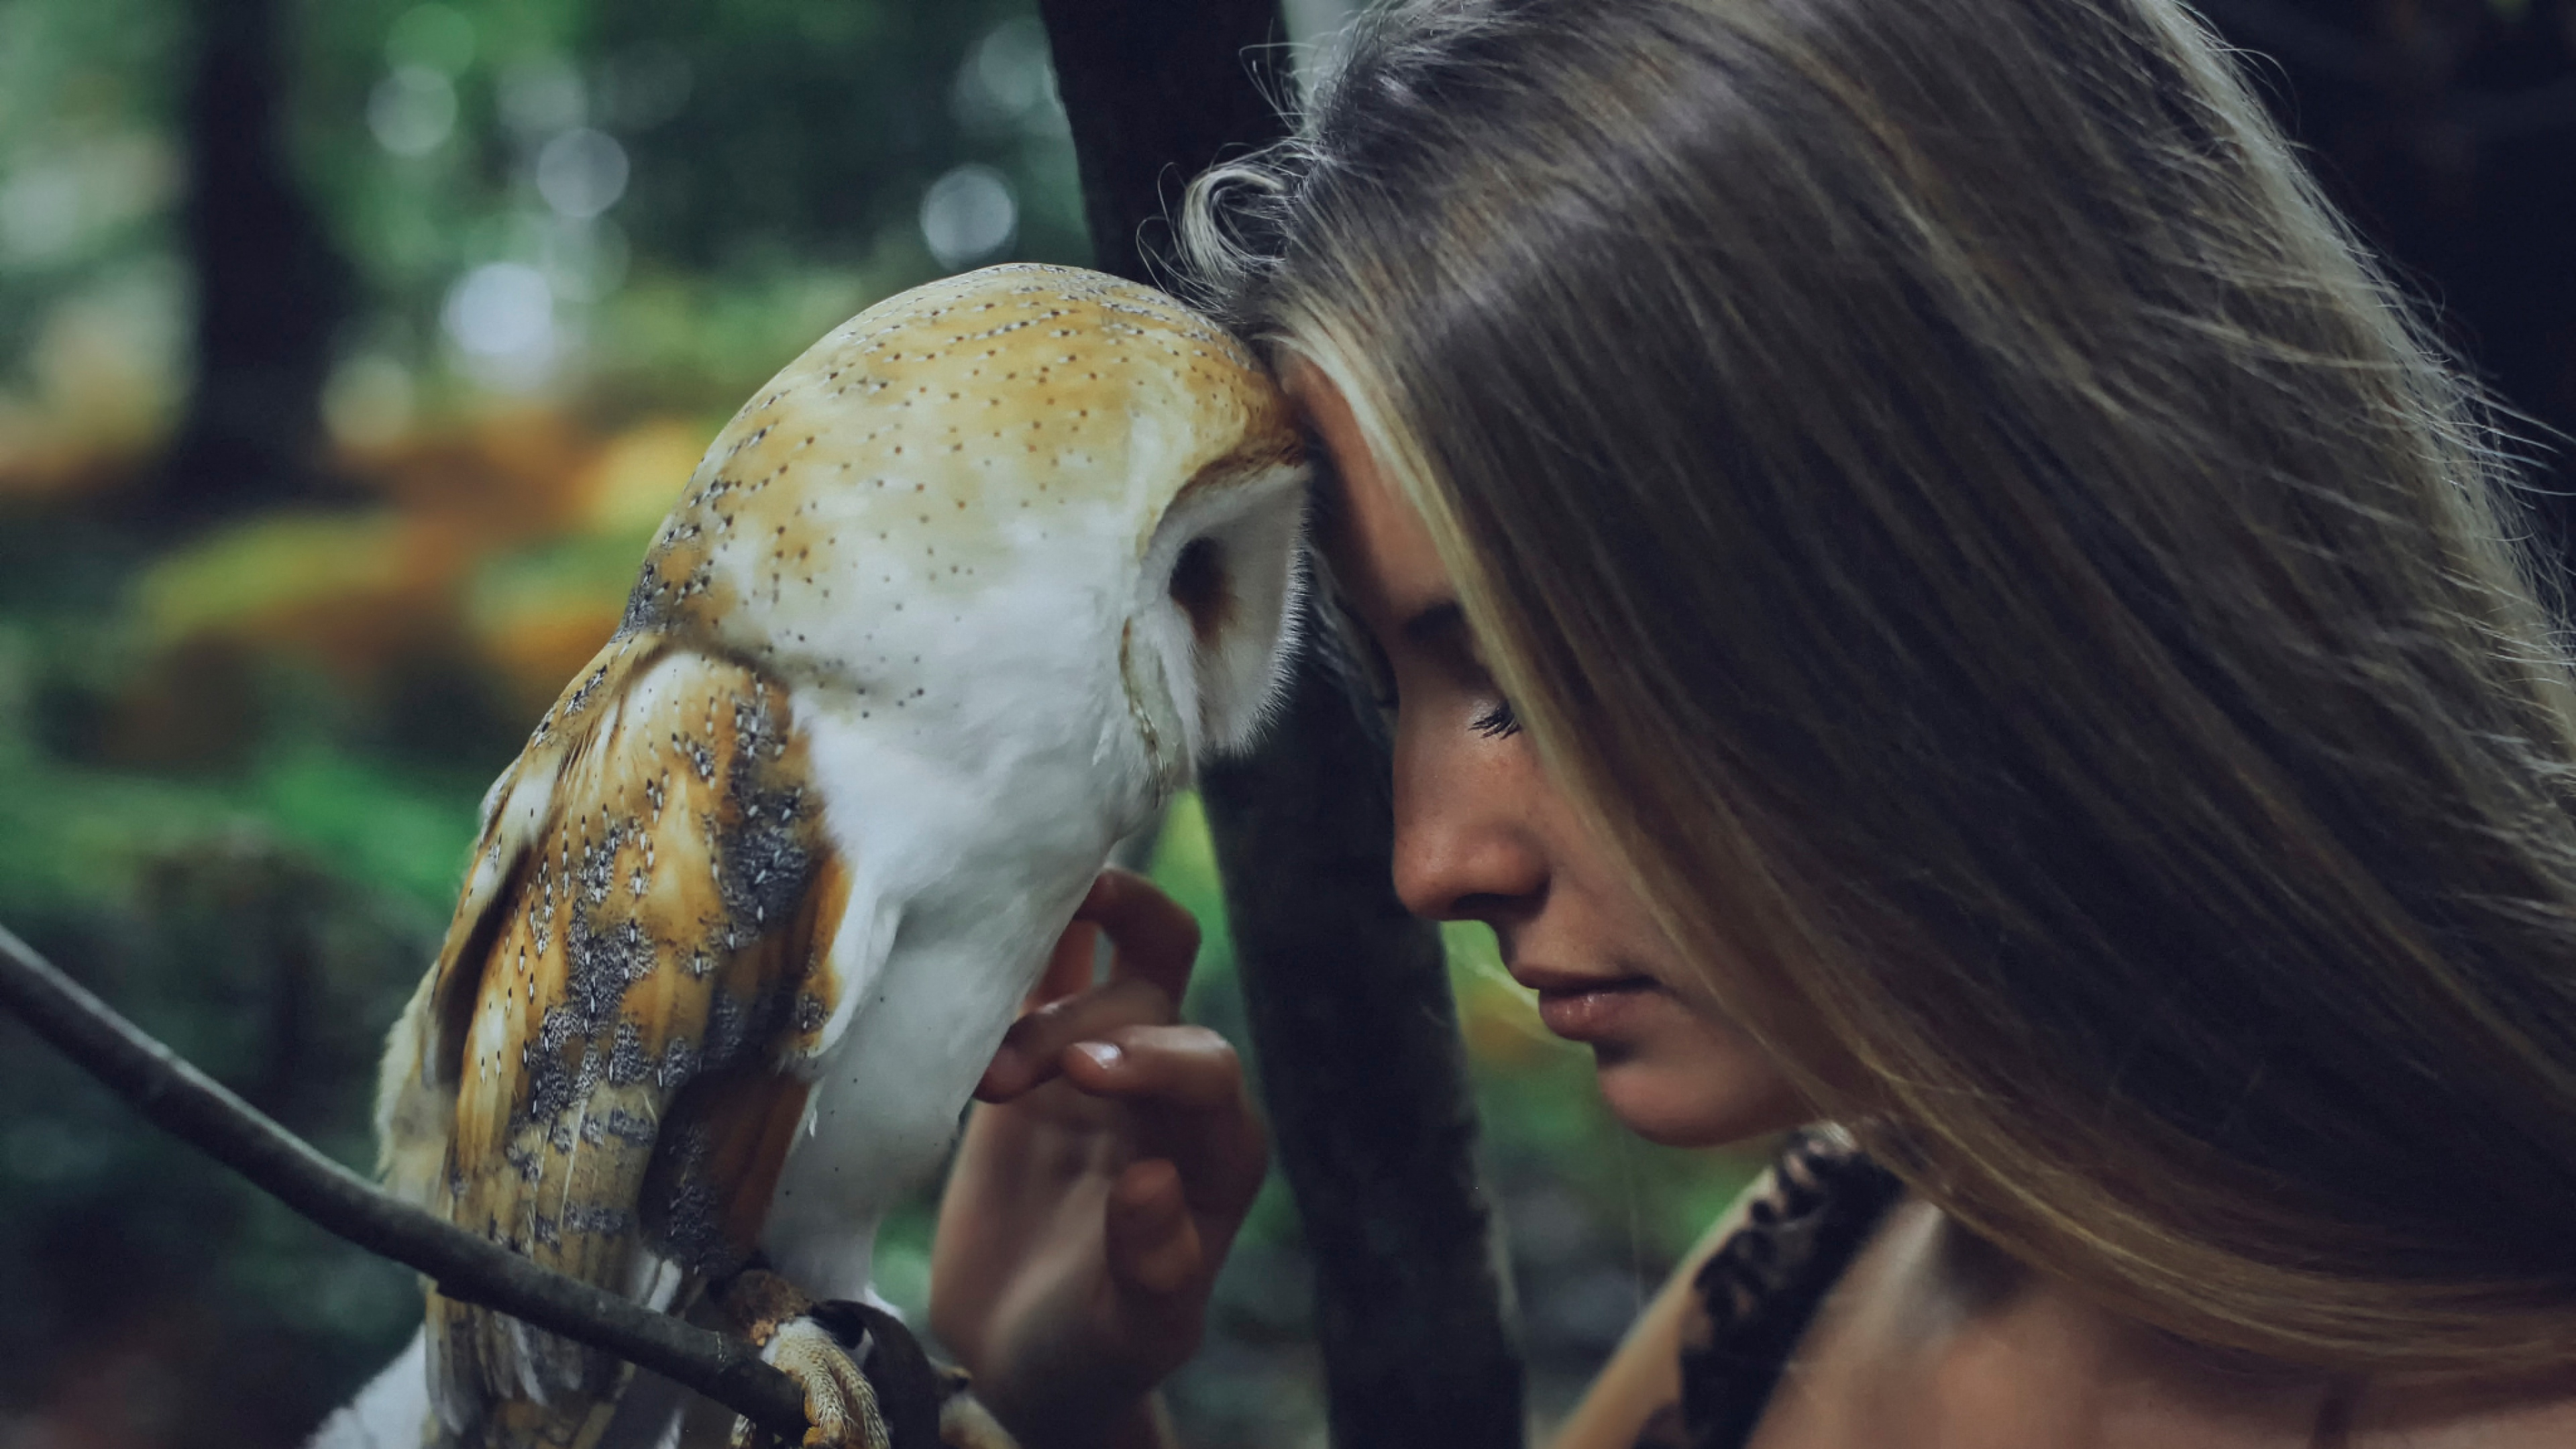 Cute Bird Desktop Wallpaper Girl With Owl Hd Photography 4k Wallpapers Images